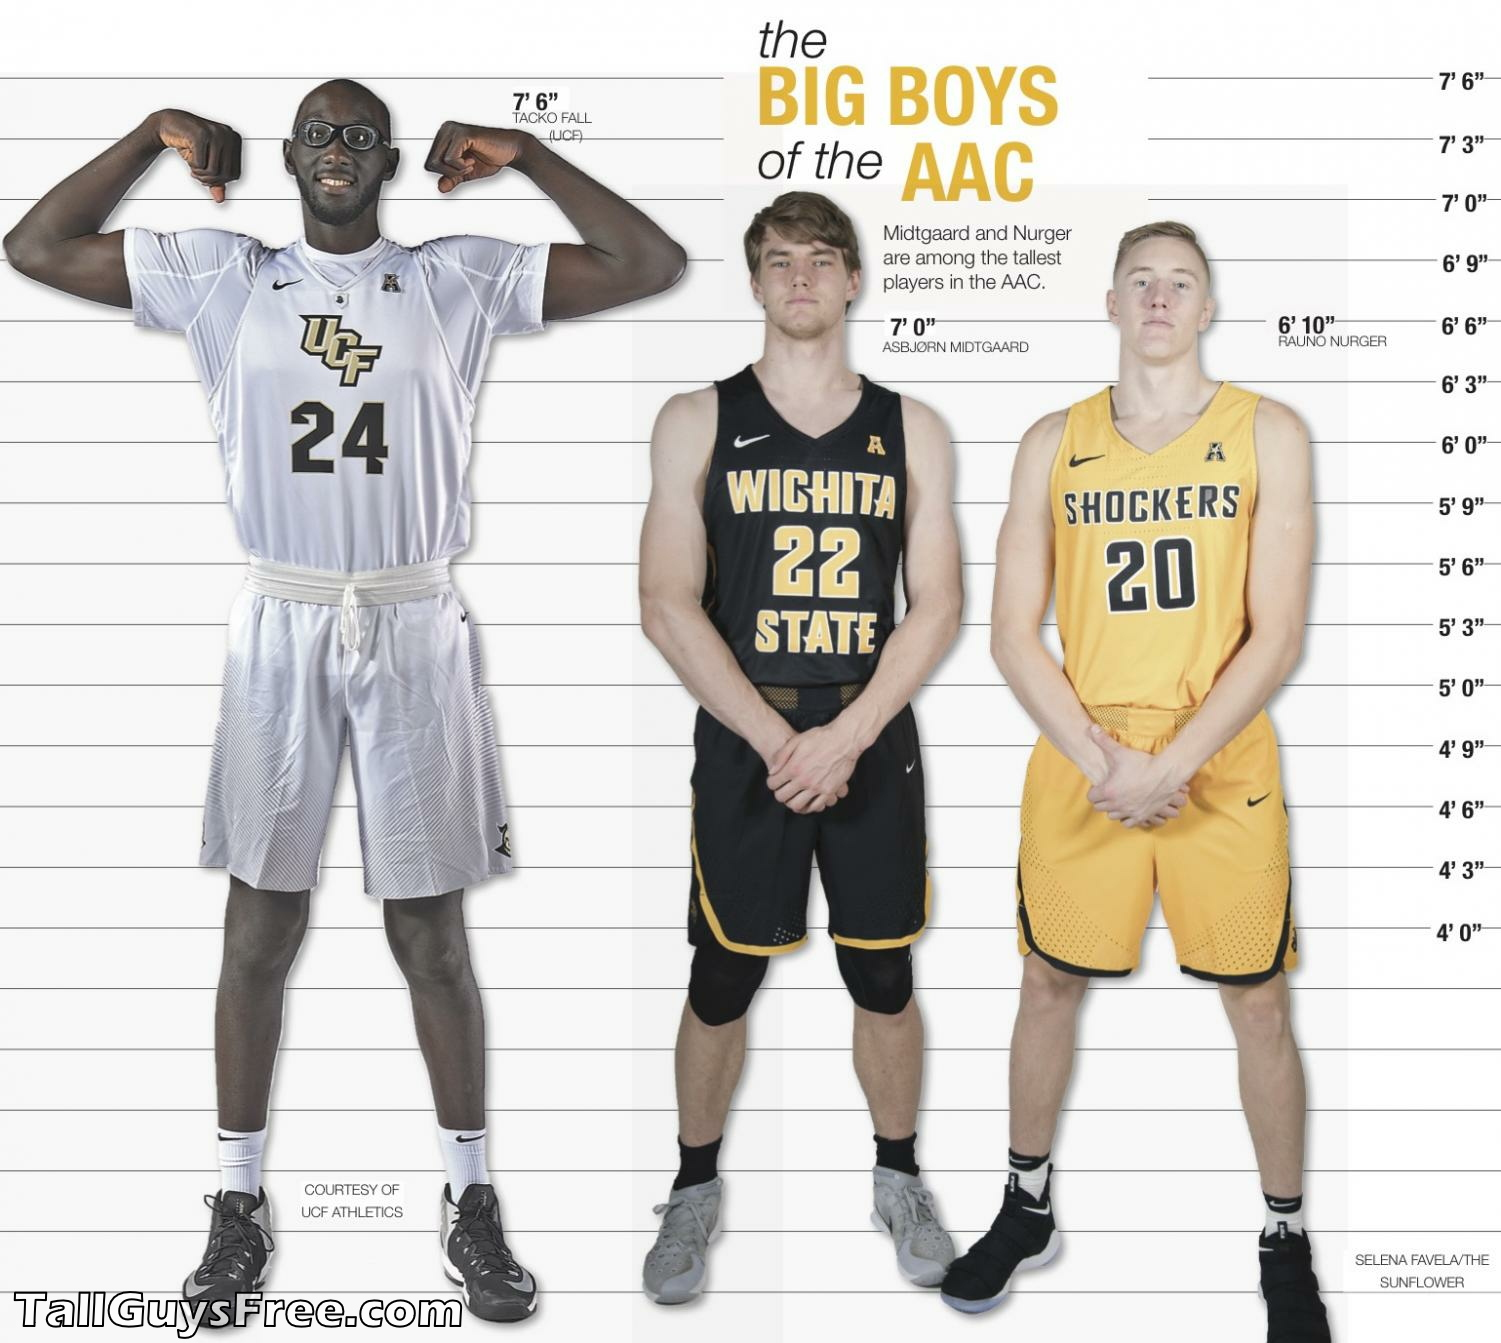 The Big Boys of the AAC